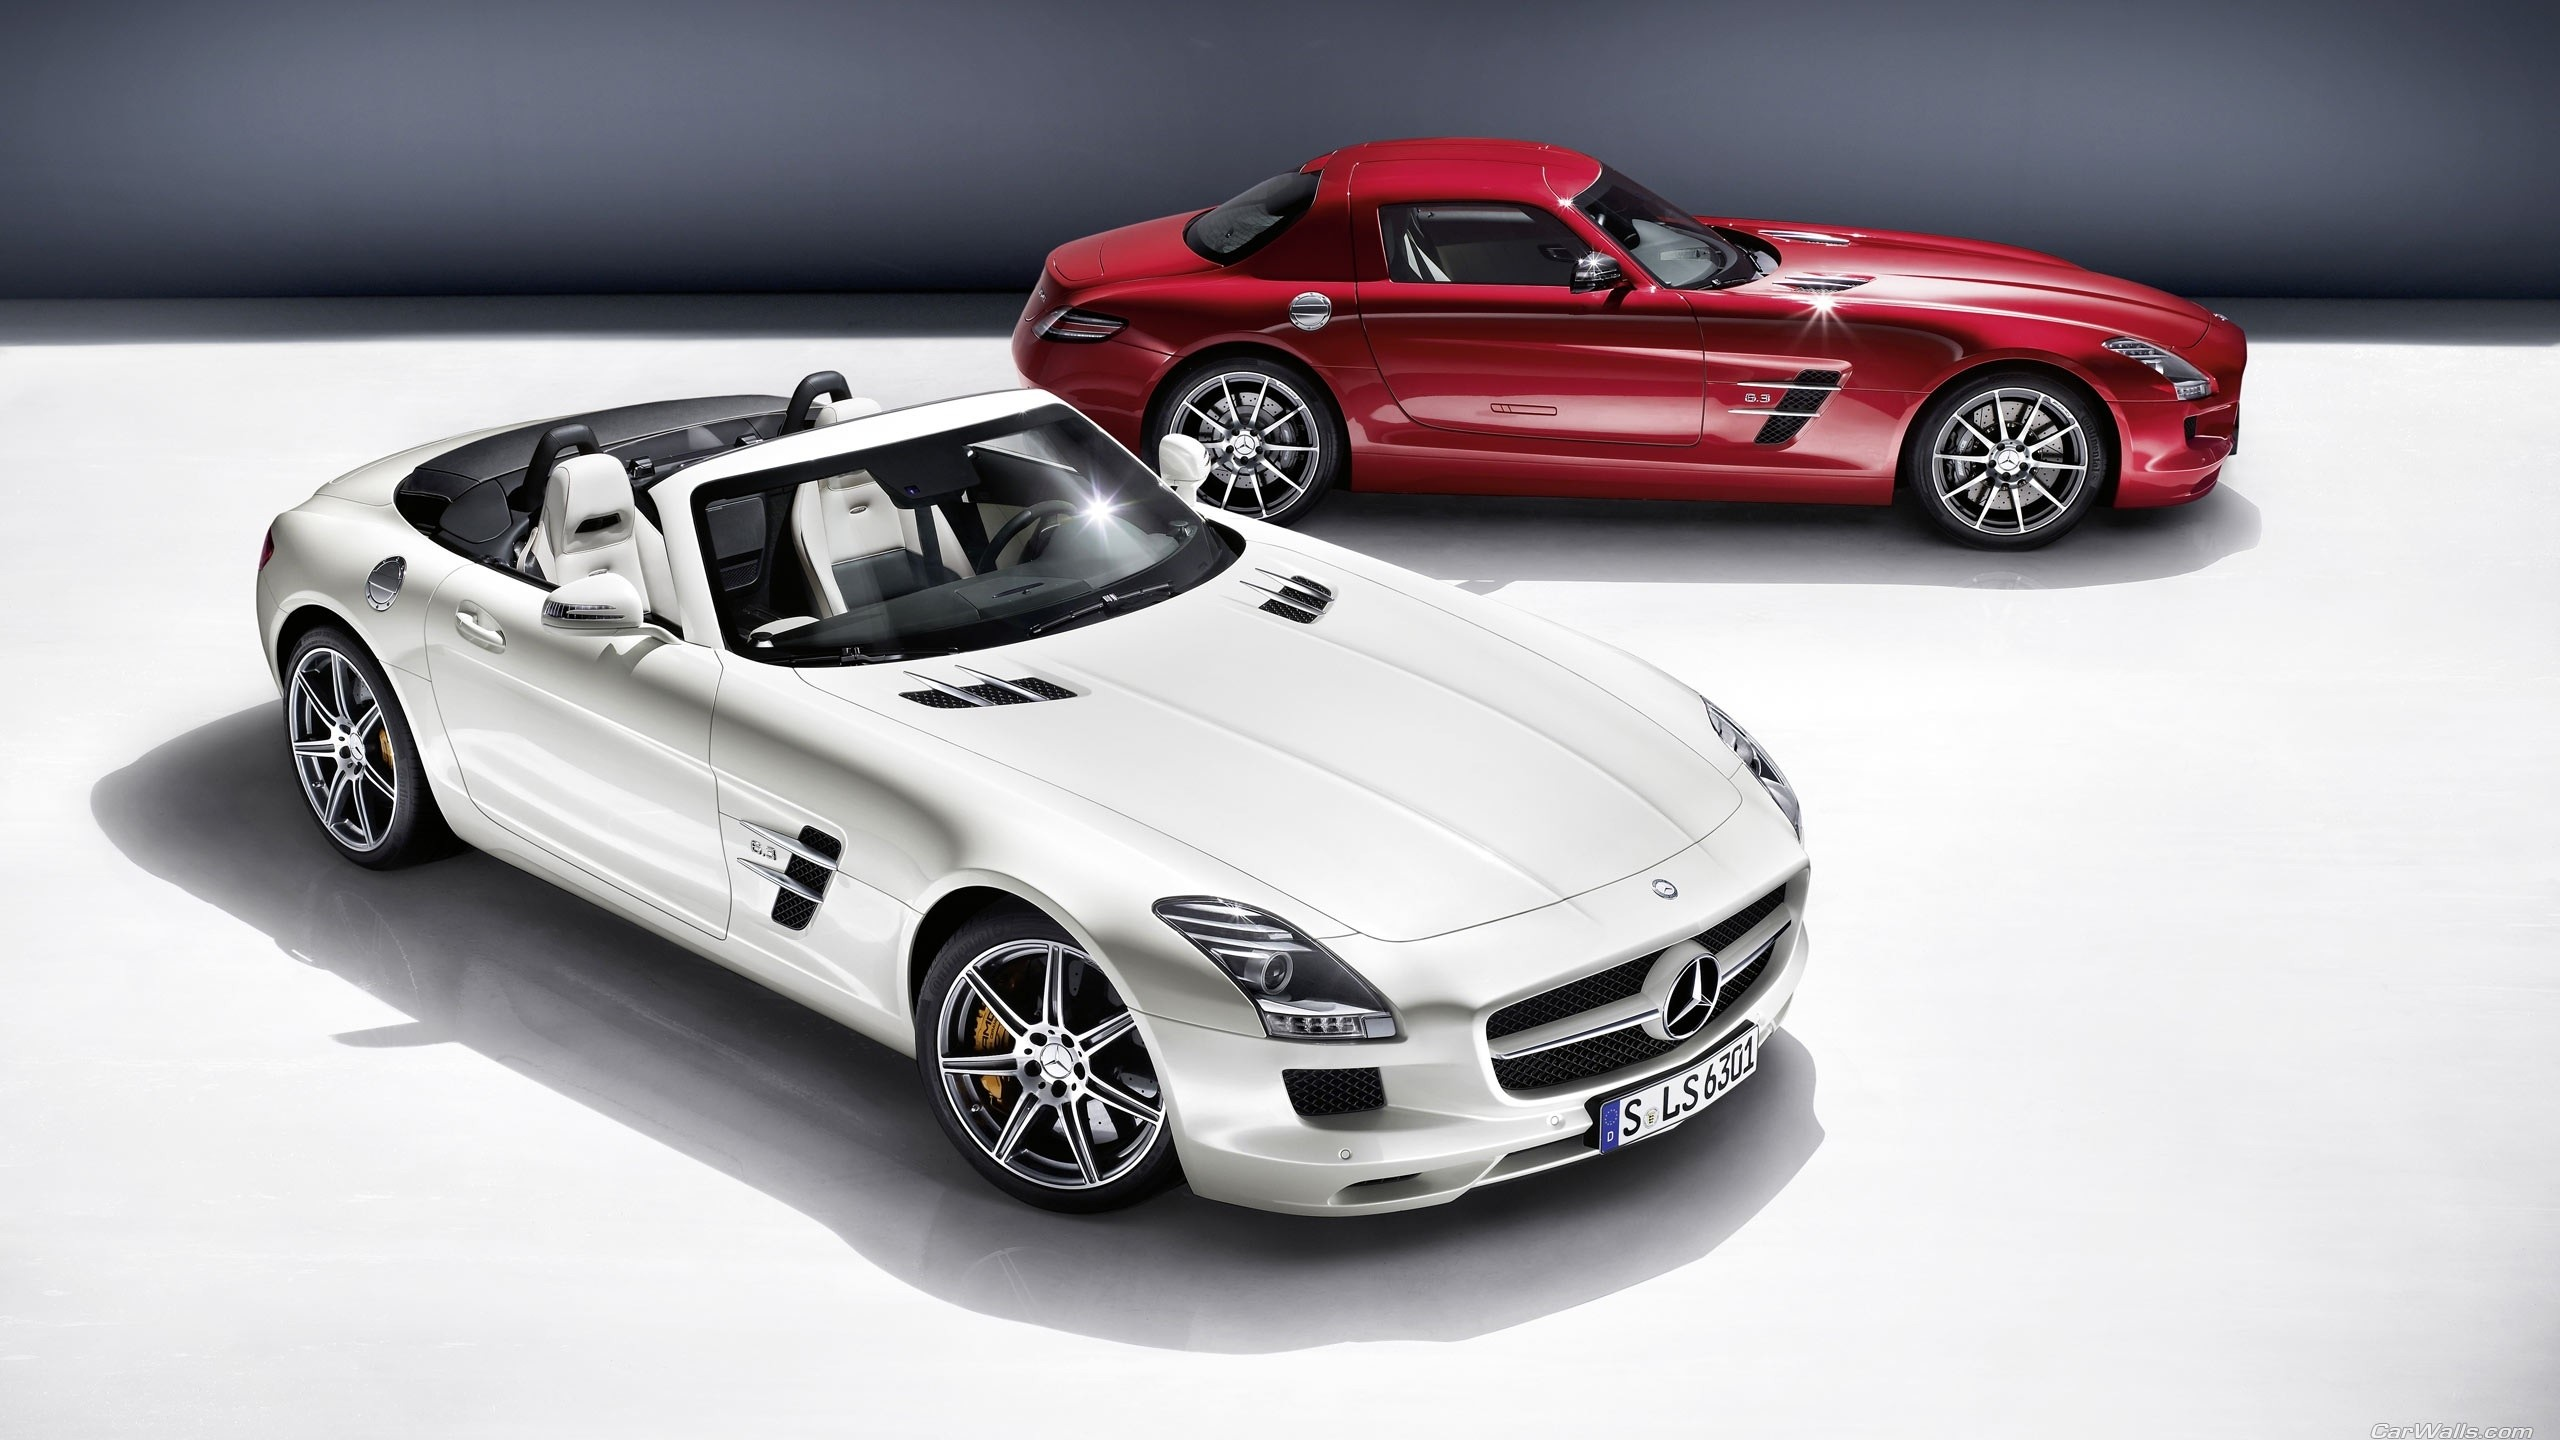 2560x1440 Vehicles - Mercedes-Benz SLS AMG Mercedes-Benz Supercar Vehicle Car White  Car Red